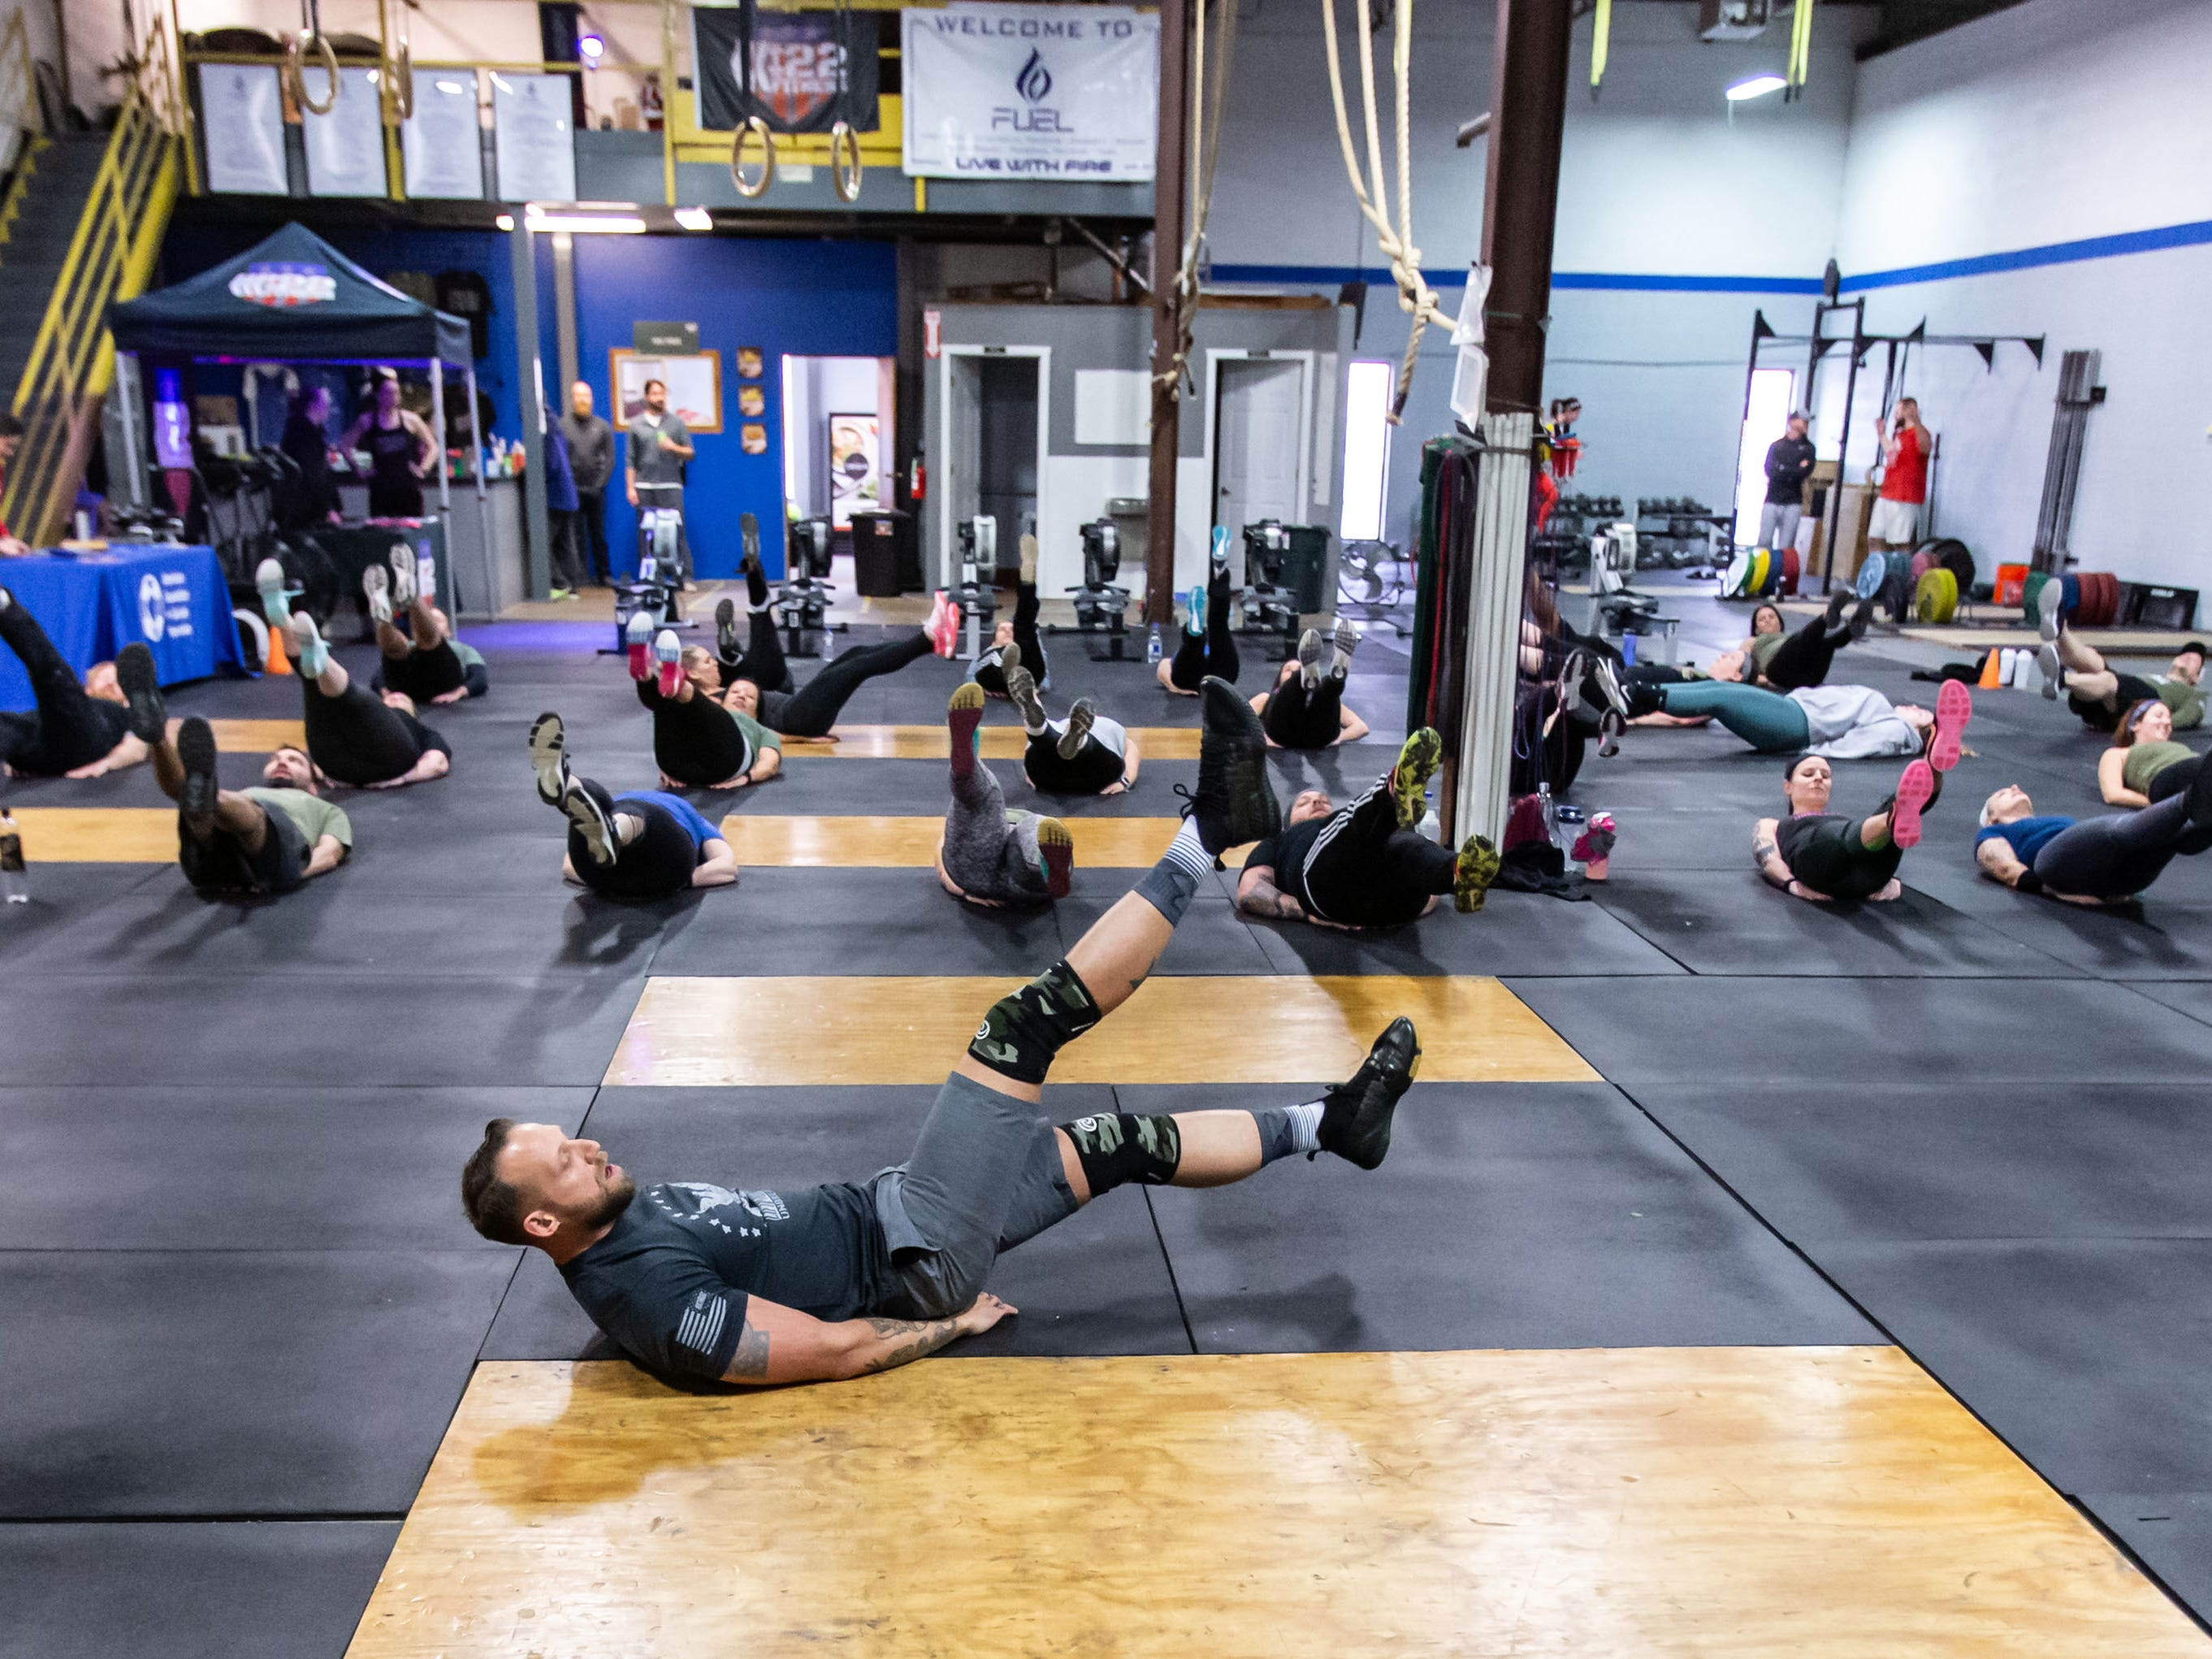 Army veteran Dan Newberry of Hales Corners leads participants through his weekly free fitness class at FUEL Fitness in Oak Creek on Sunday, Jan. 6, 2019. Dan's organization, 22 Fitness Foundation Inc., is collecting donations for the American Foundation for Suicide Prevention (AFSP). The Jan. 6 class was a fundraiser and informational gathering for the AFSP.